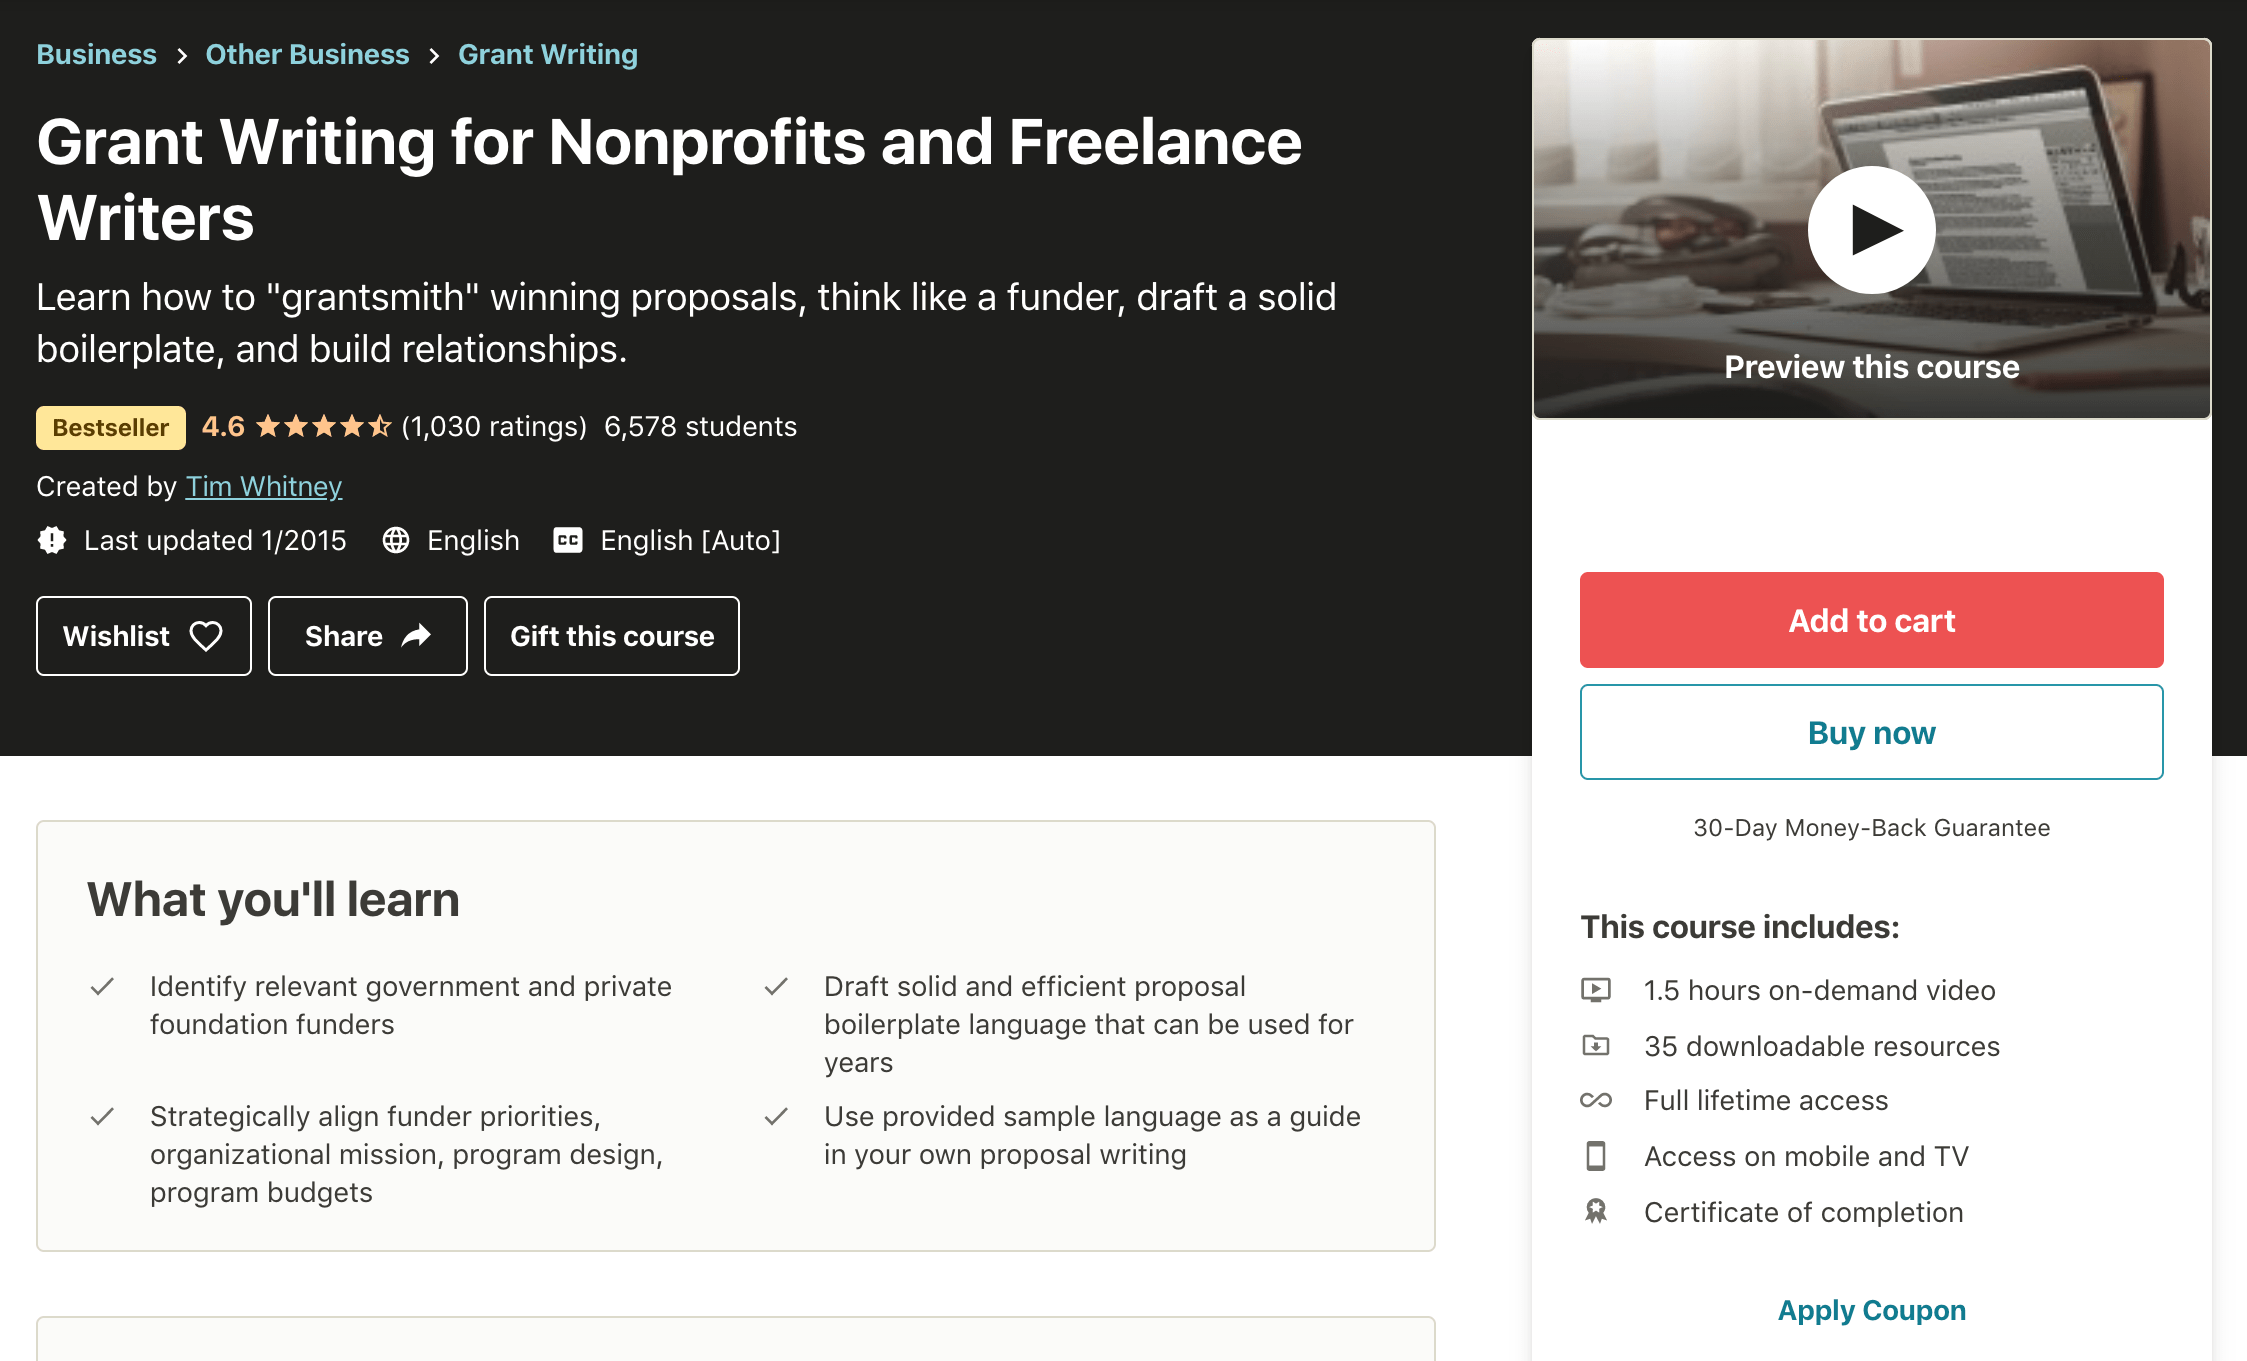 Grant-Writing-for-Nonprofits-and-Freelance-Writers-Udemy